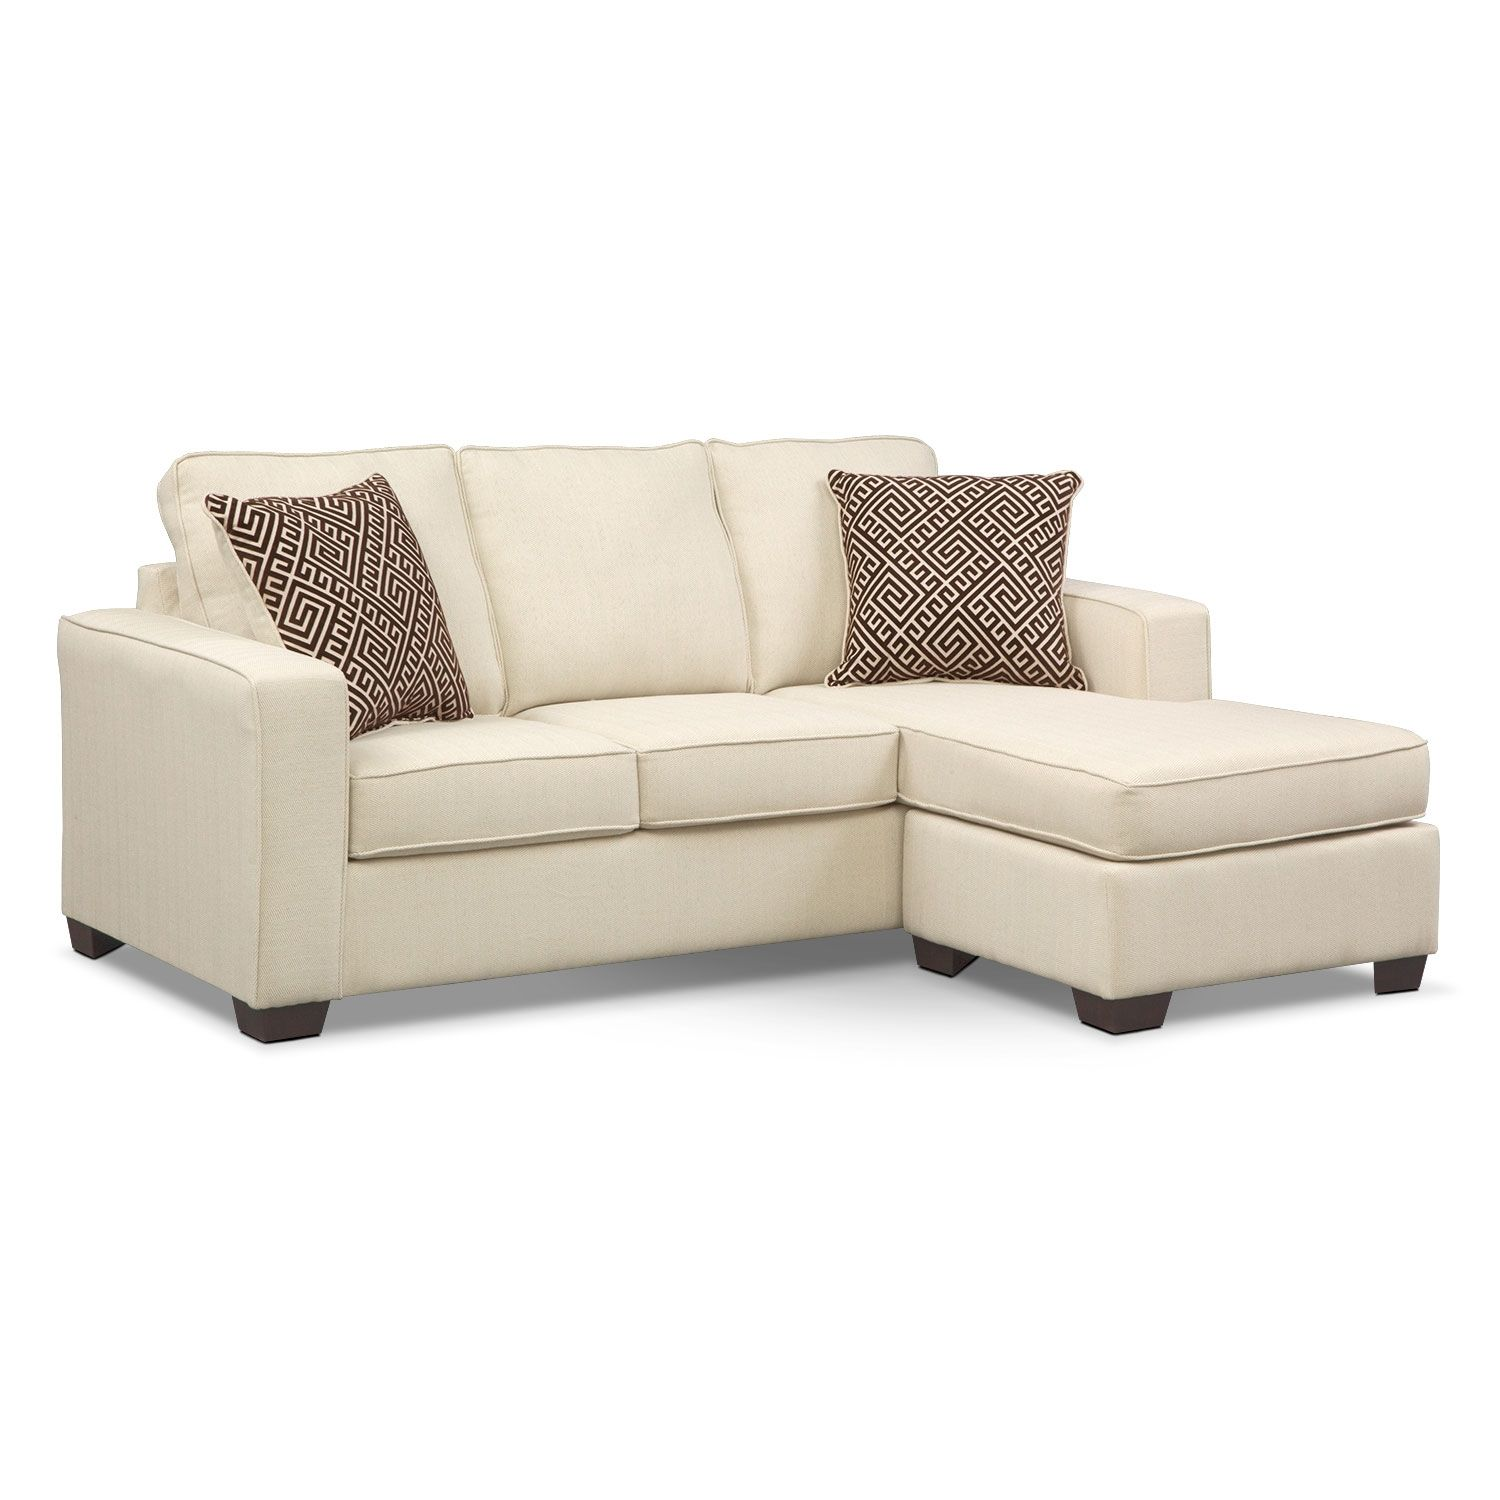 Furniture Living Room Seating Sleeper Sofas Beige